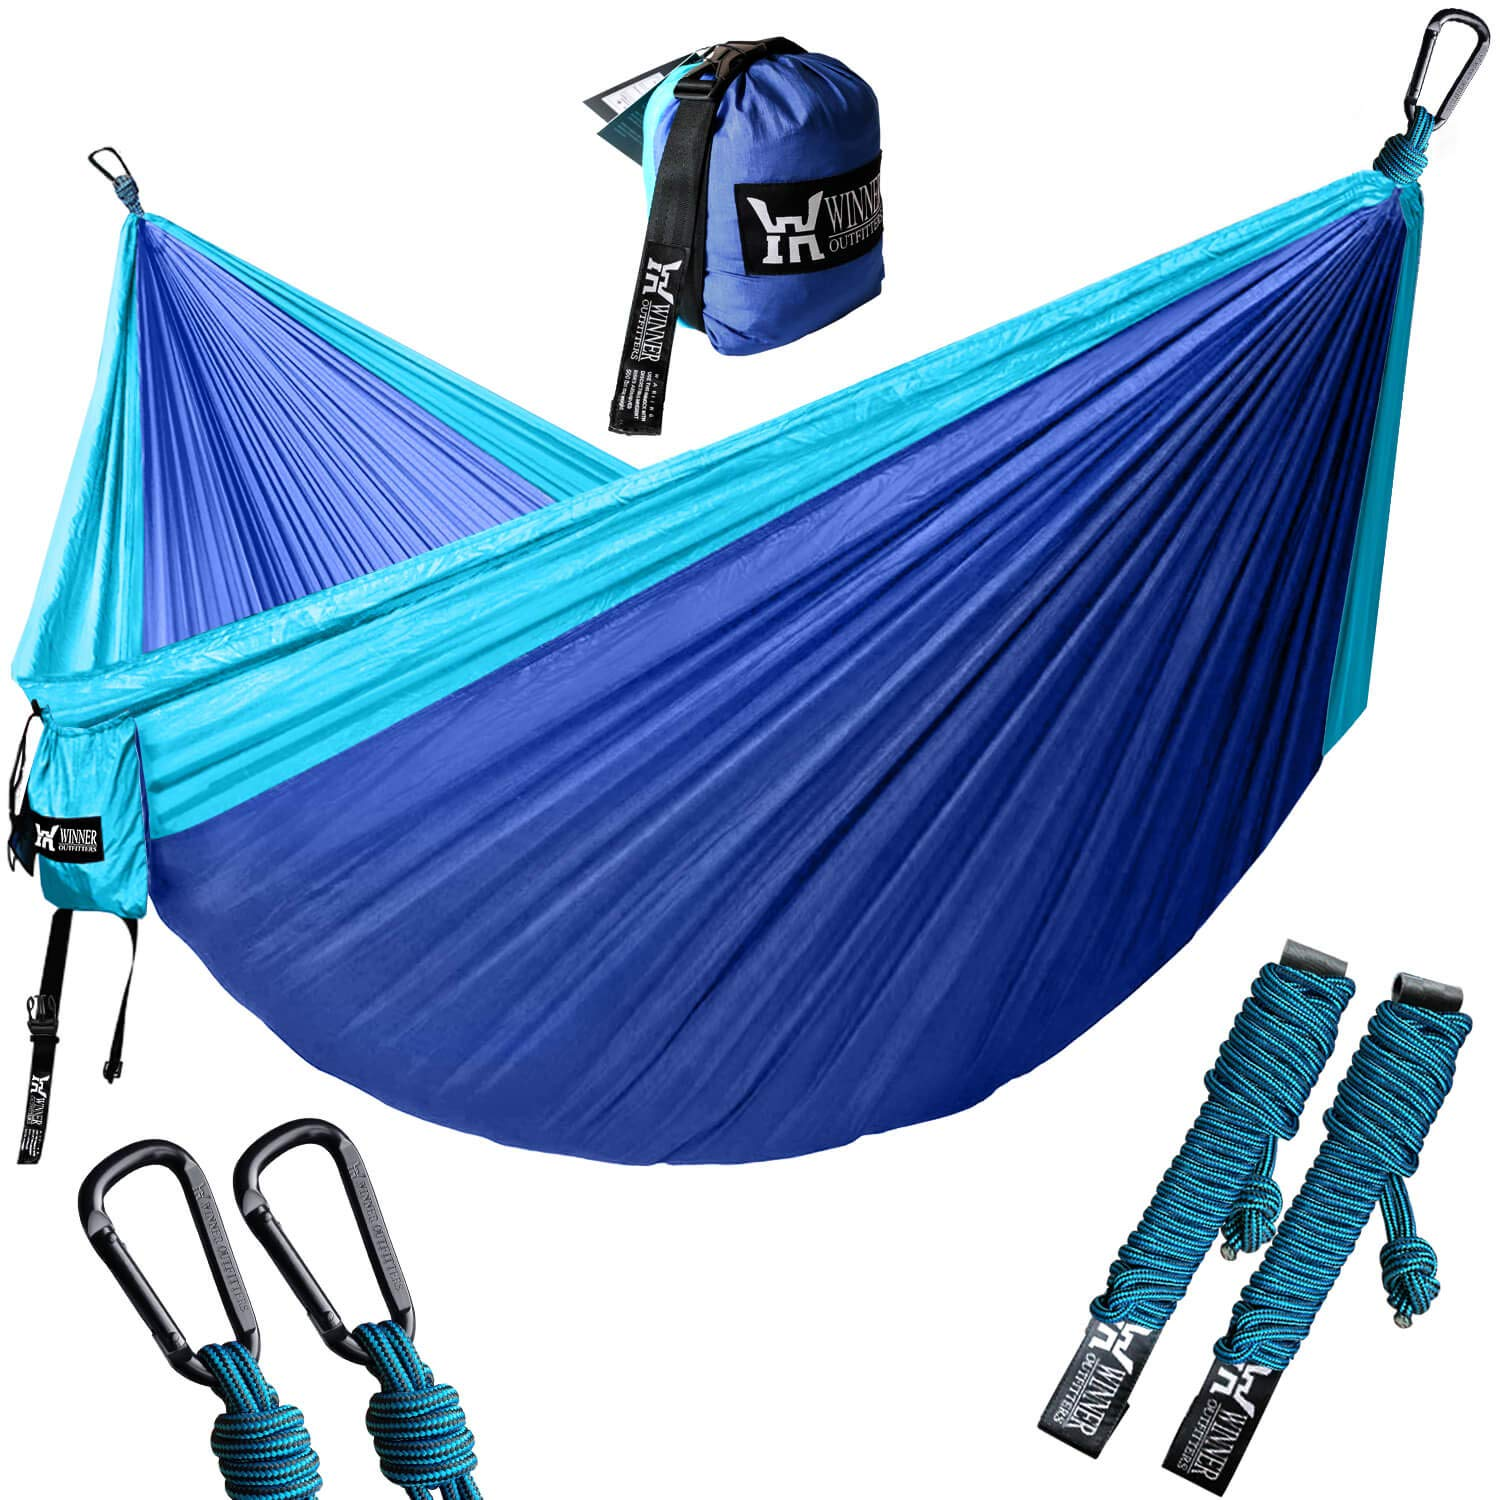 WINNER OUTFITTERS Double Camping Hammock - Lightweight Nylon Portable Hammock, Best Parachute Double Hammock for Backpacking, Camping, Travel, Beach, Yard. 118''(L) x 78''(W), Sky Blue/Blue Color by WINNER OUTFITTERS